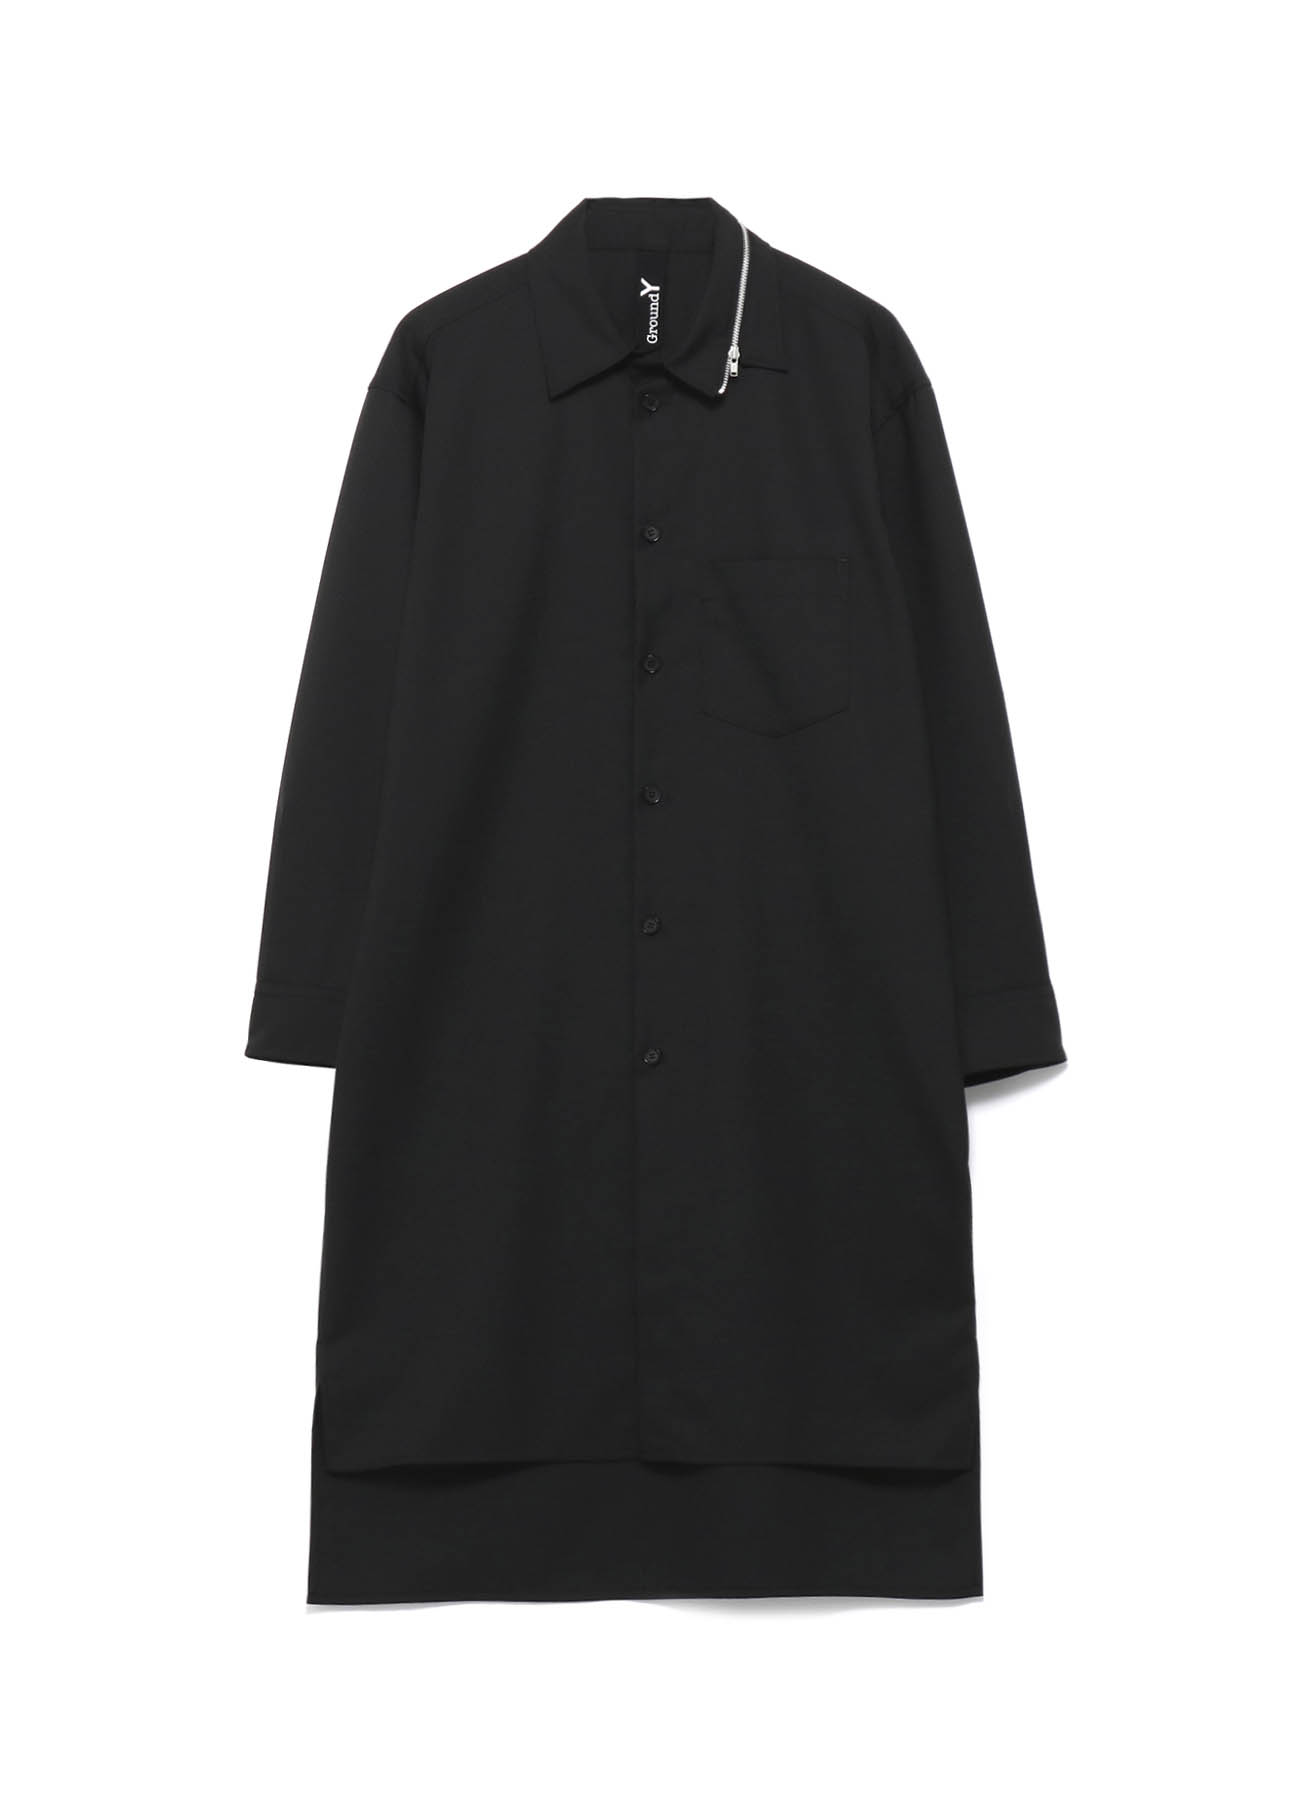 T/W Gabardine Zipper Collar Shirt